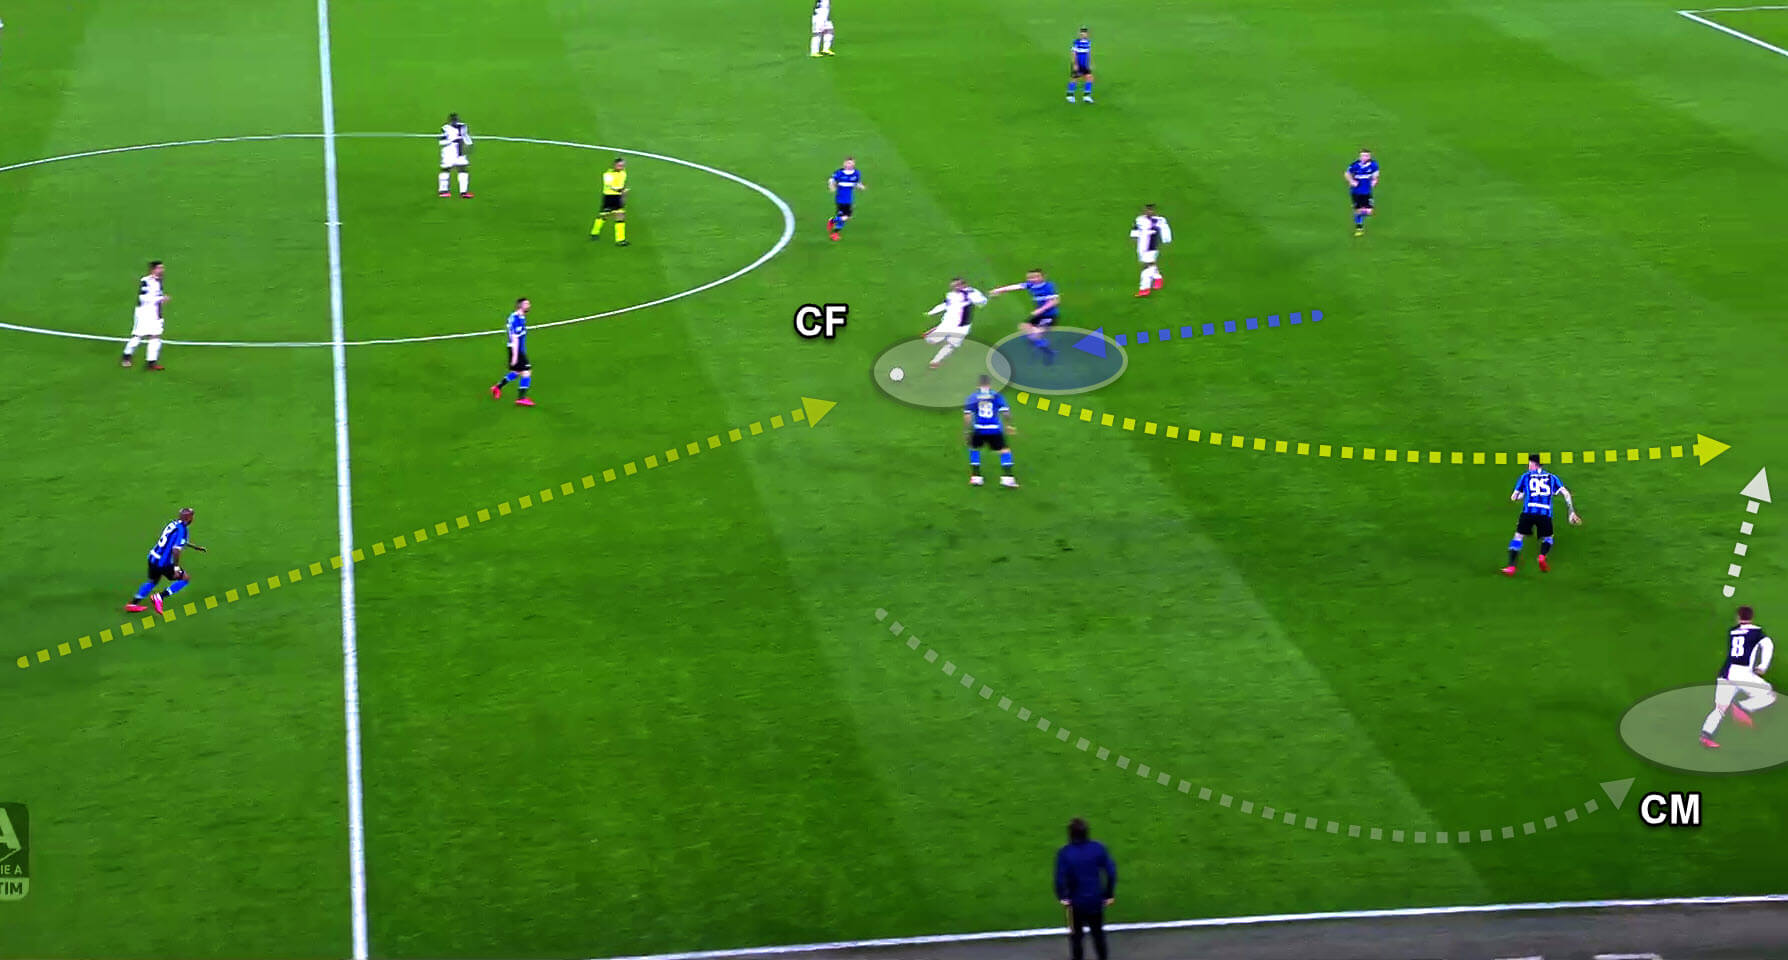 Coaching: Patterns of play in 4-4-2 tactics